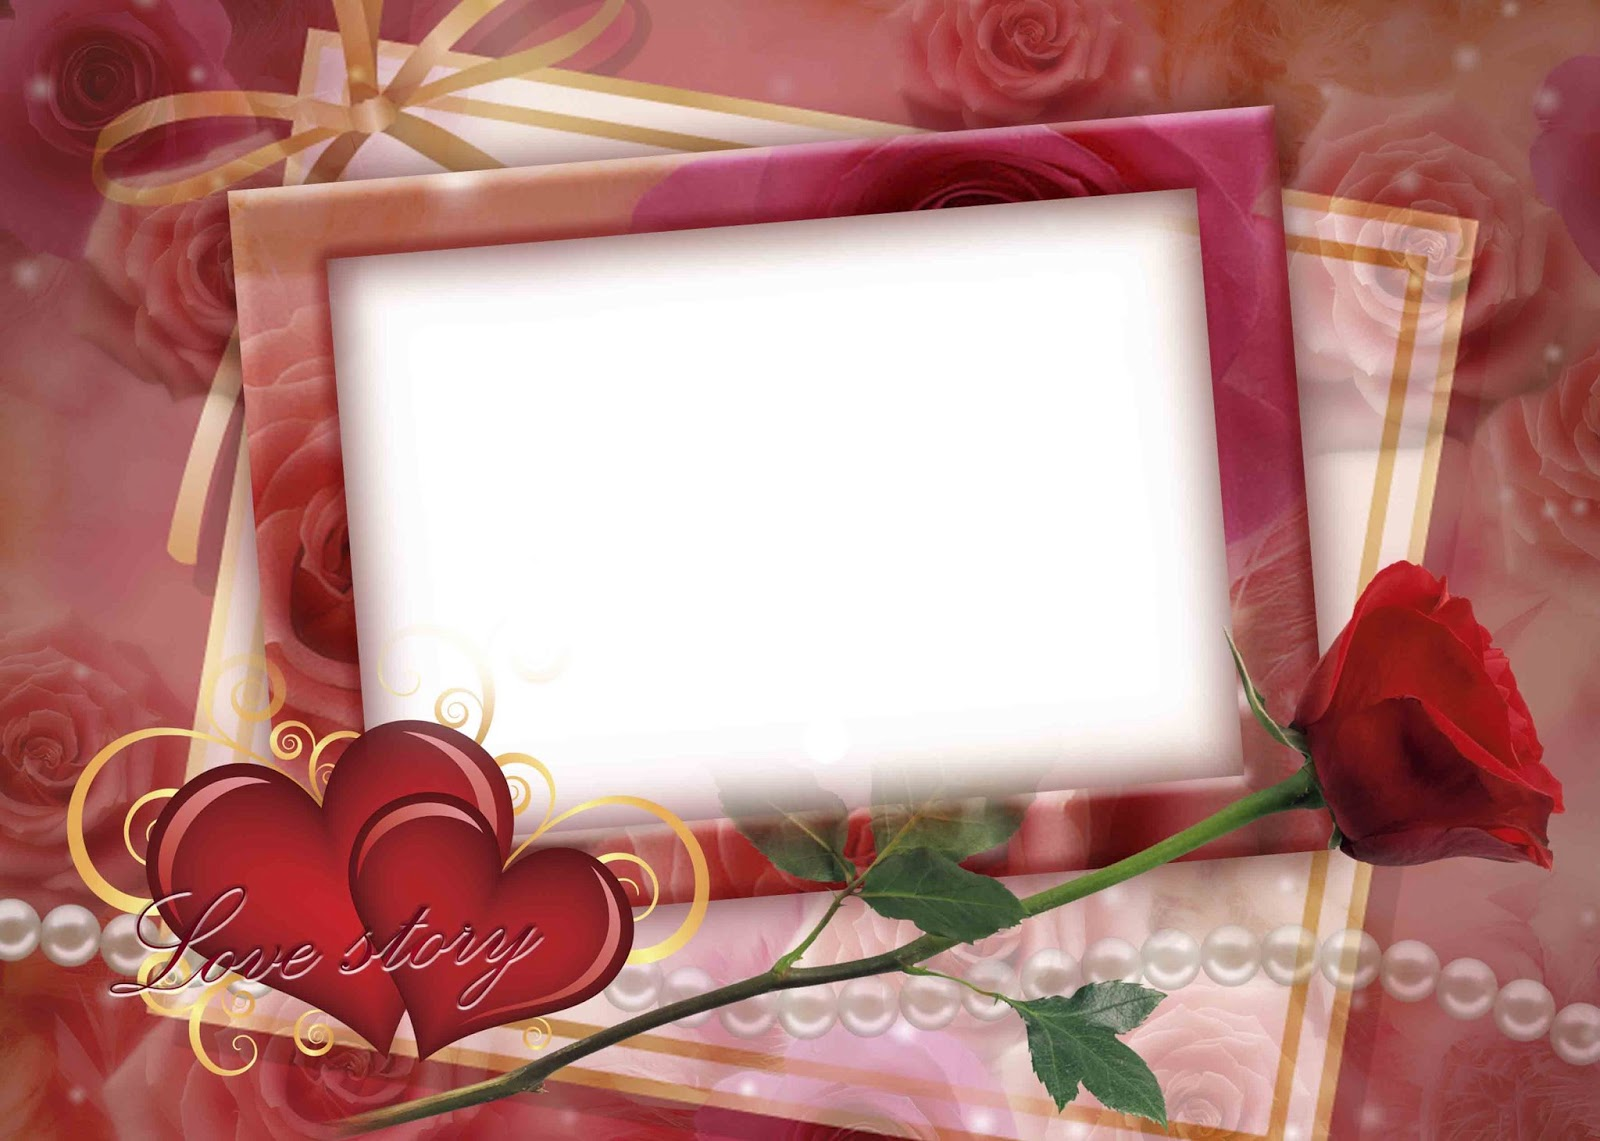 8 Love Frames For Photoshop PSD Images - Love Frame ... Love Frames For Photoshop